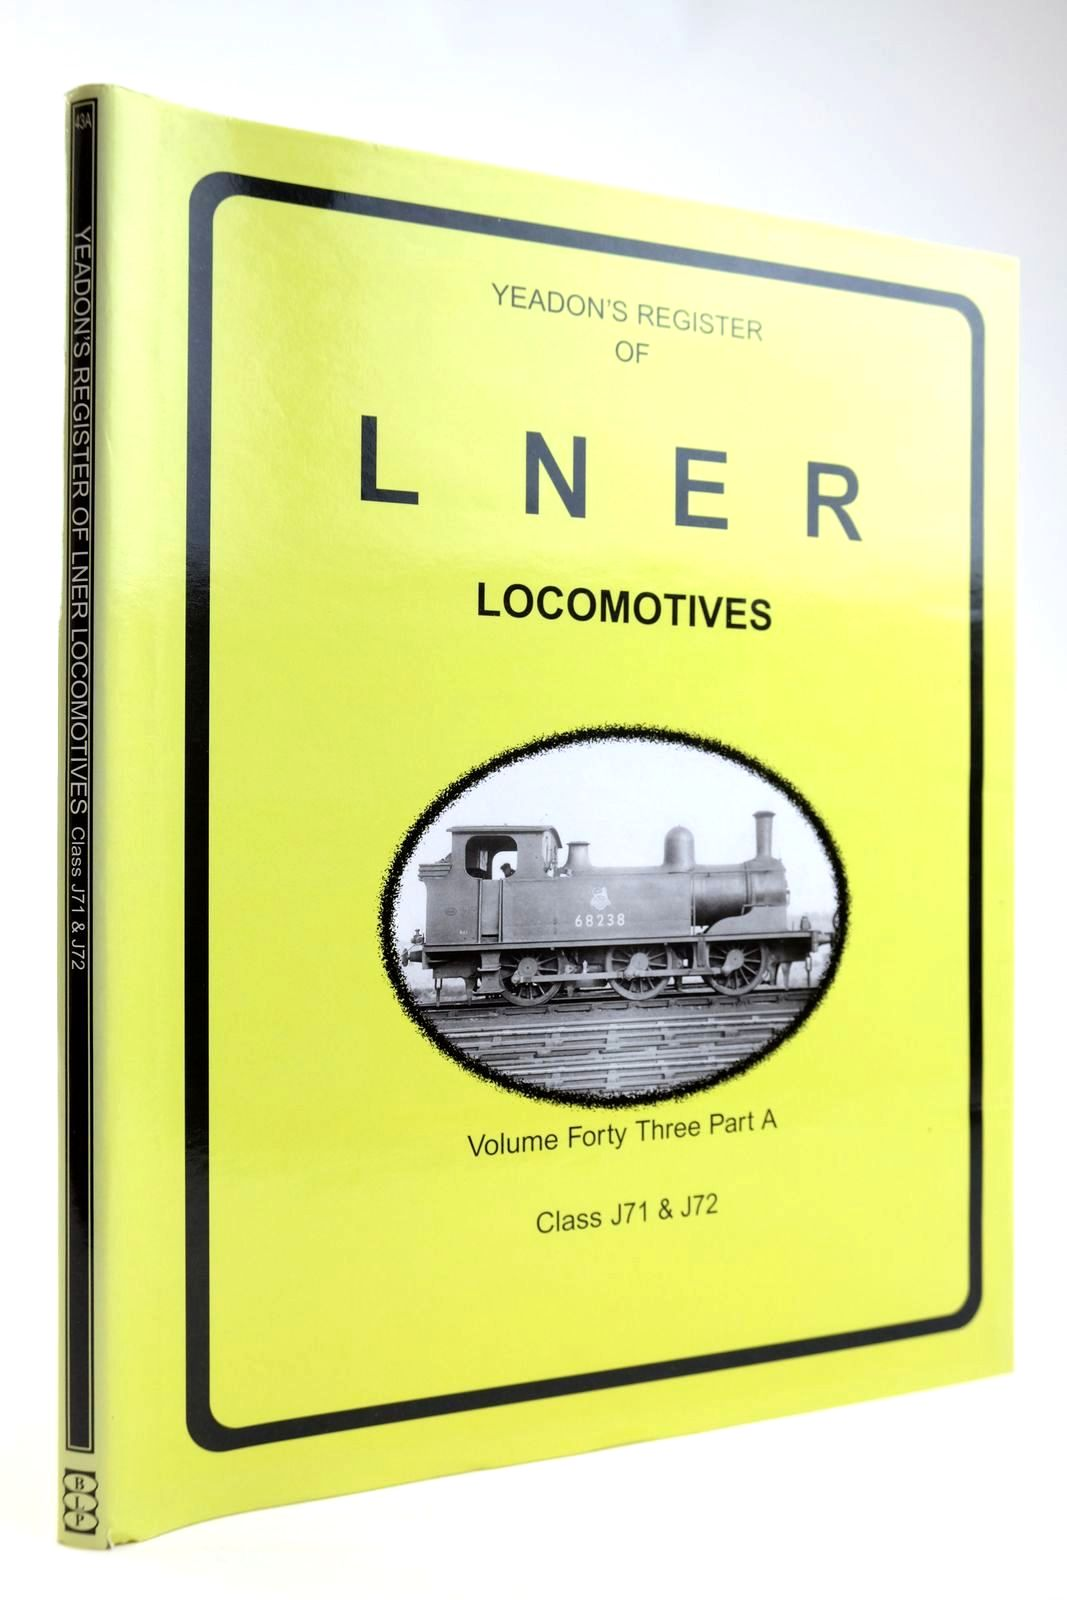 Photo of YEADON'S REGISTER OF LNER LOCOMOTIVES VOLUME FORTY THREE PART A written by Yeadon, W.B. published by Challenger Publications, Book Law Publications (STOCK CODE: 2133574)  for sale by Stella & Rose's Books